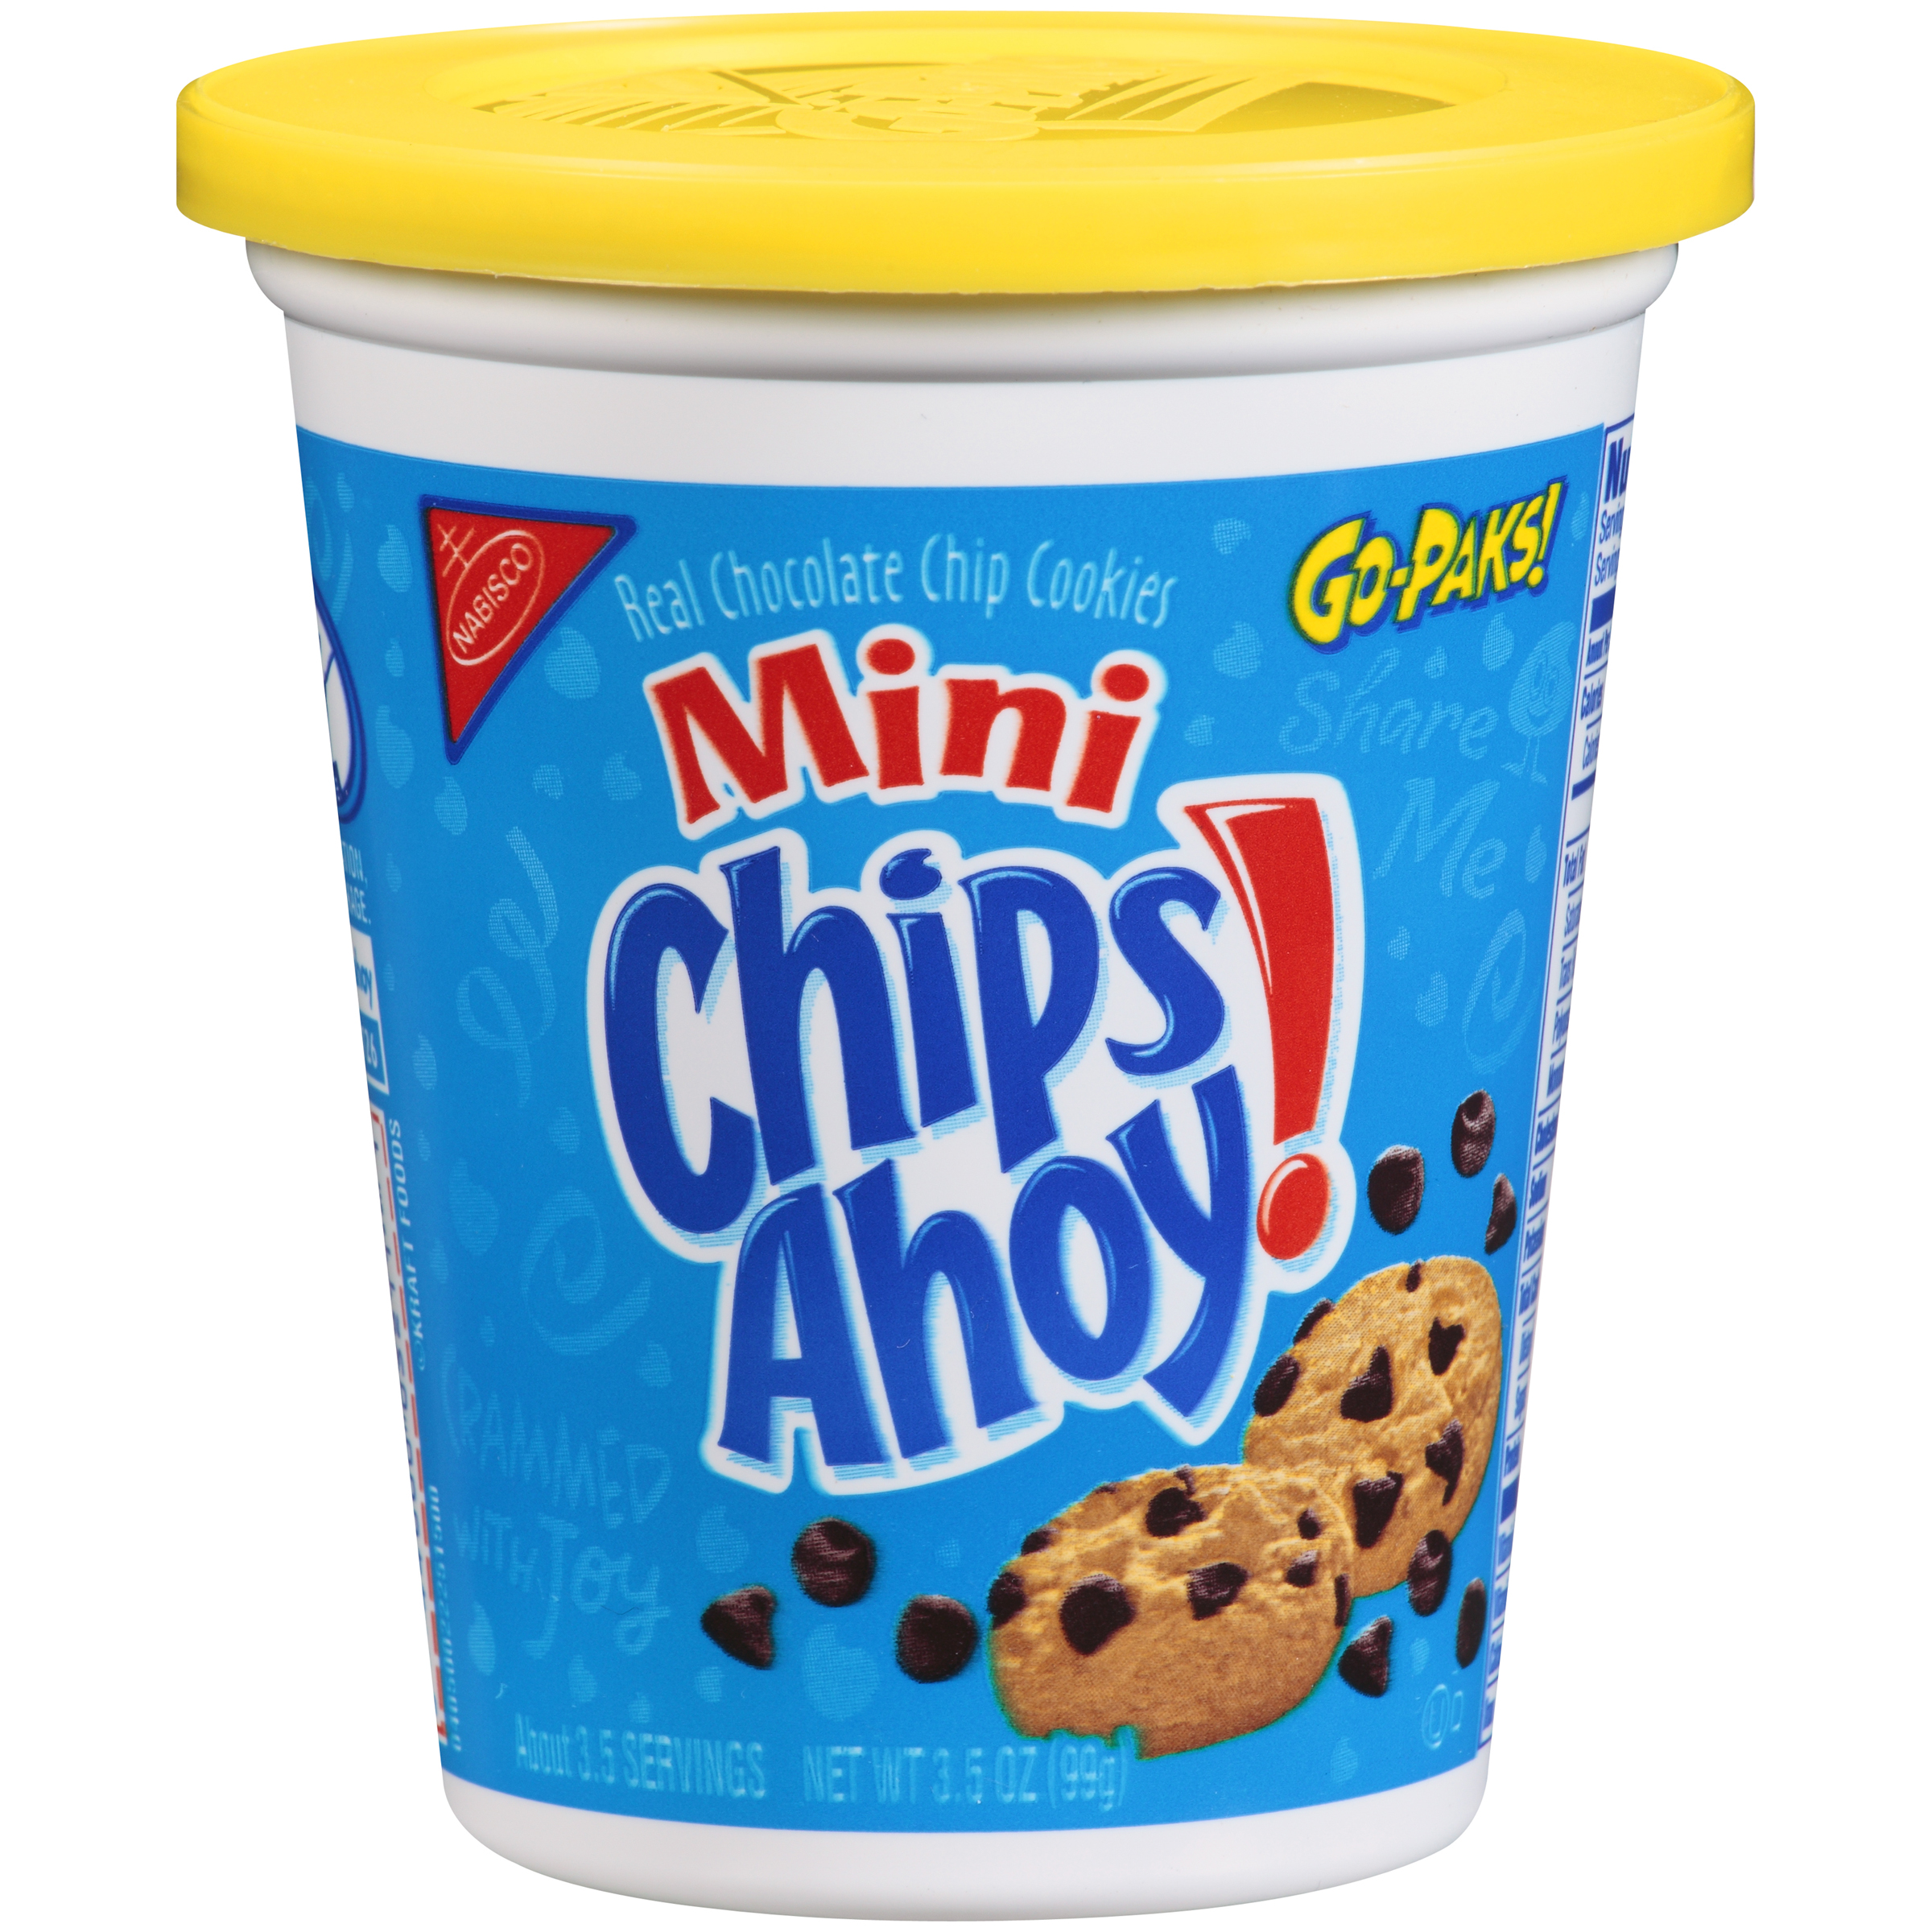 CHIPS AHOY! Mini Chocolate Chip Cookies - Go-Pak, 3.5 oz